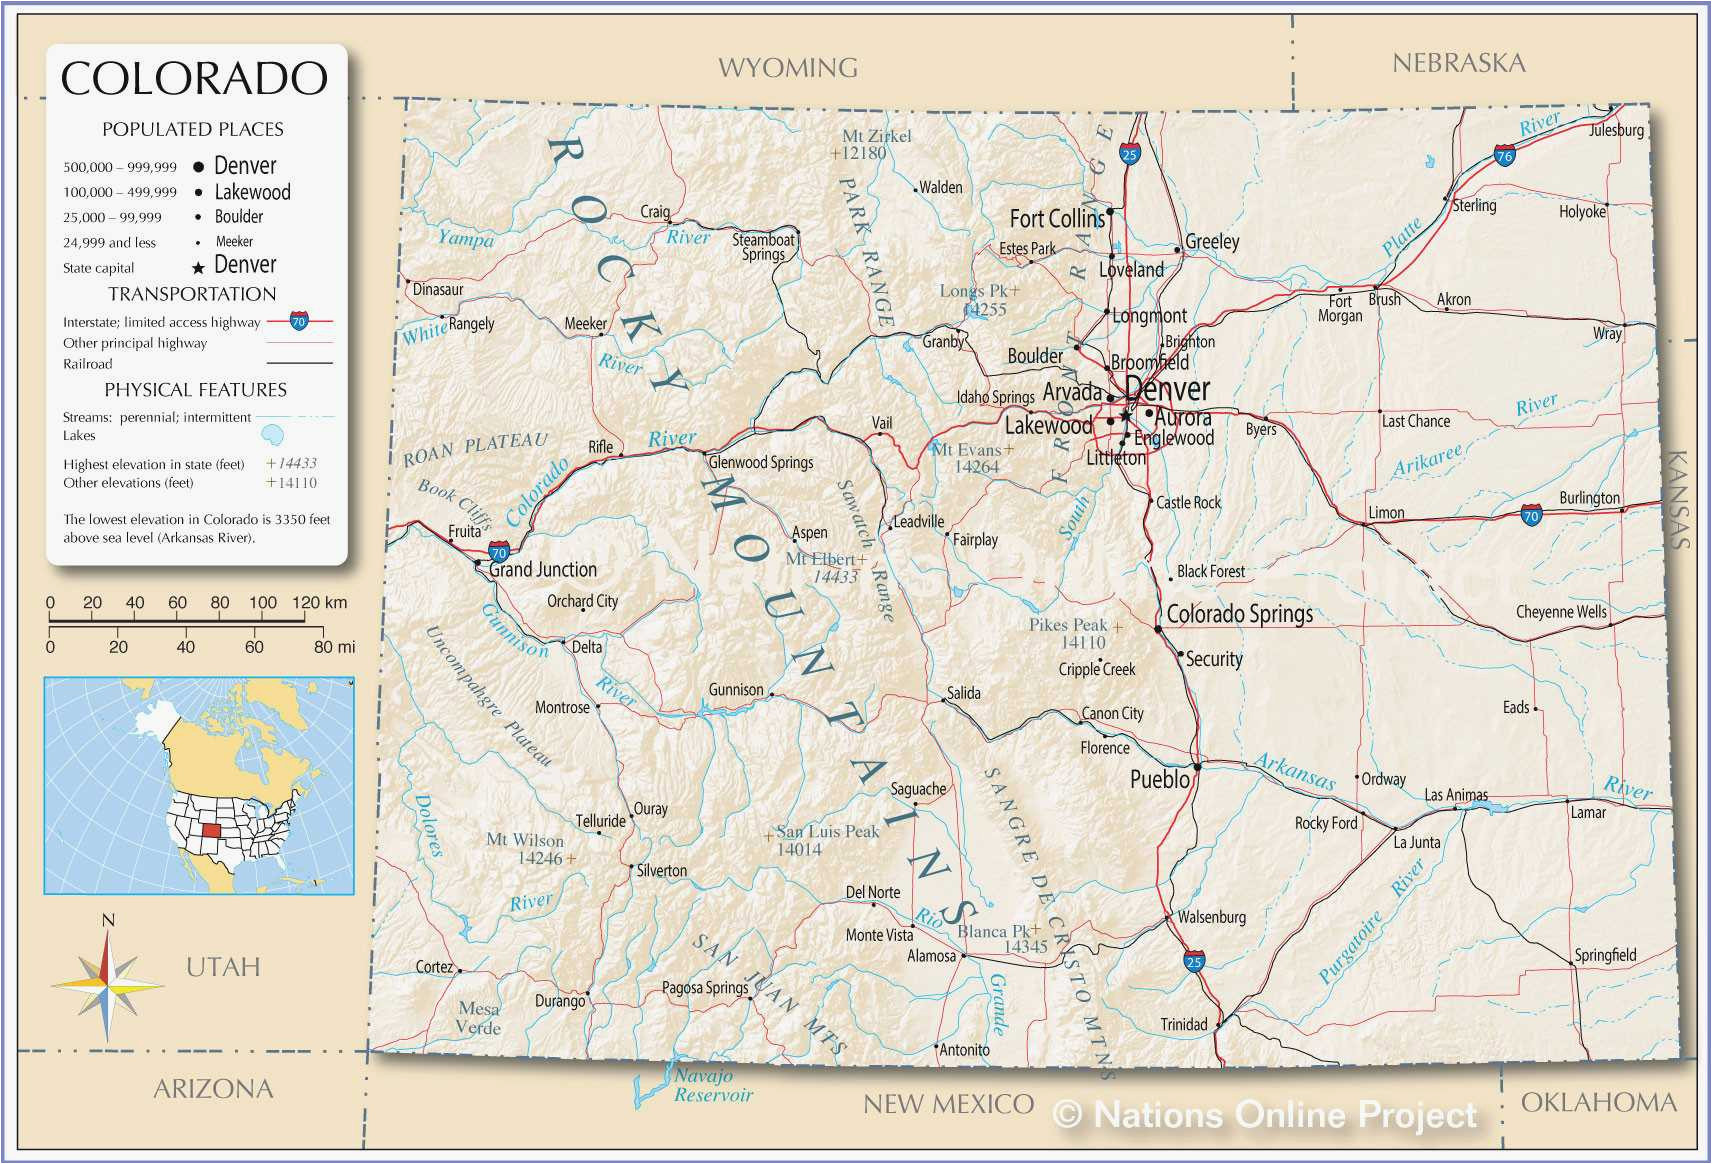 denver county map lovely denver county map beautiful city map denver